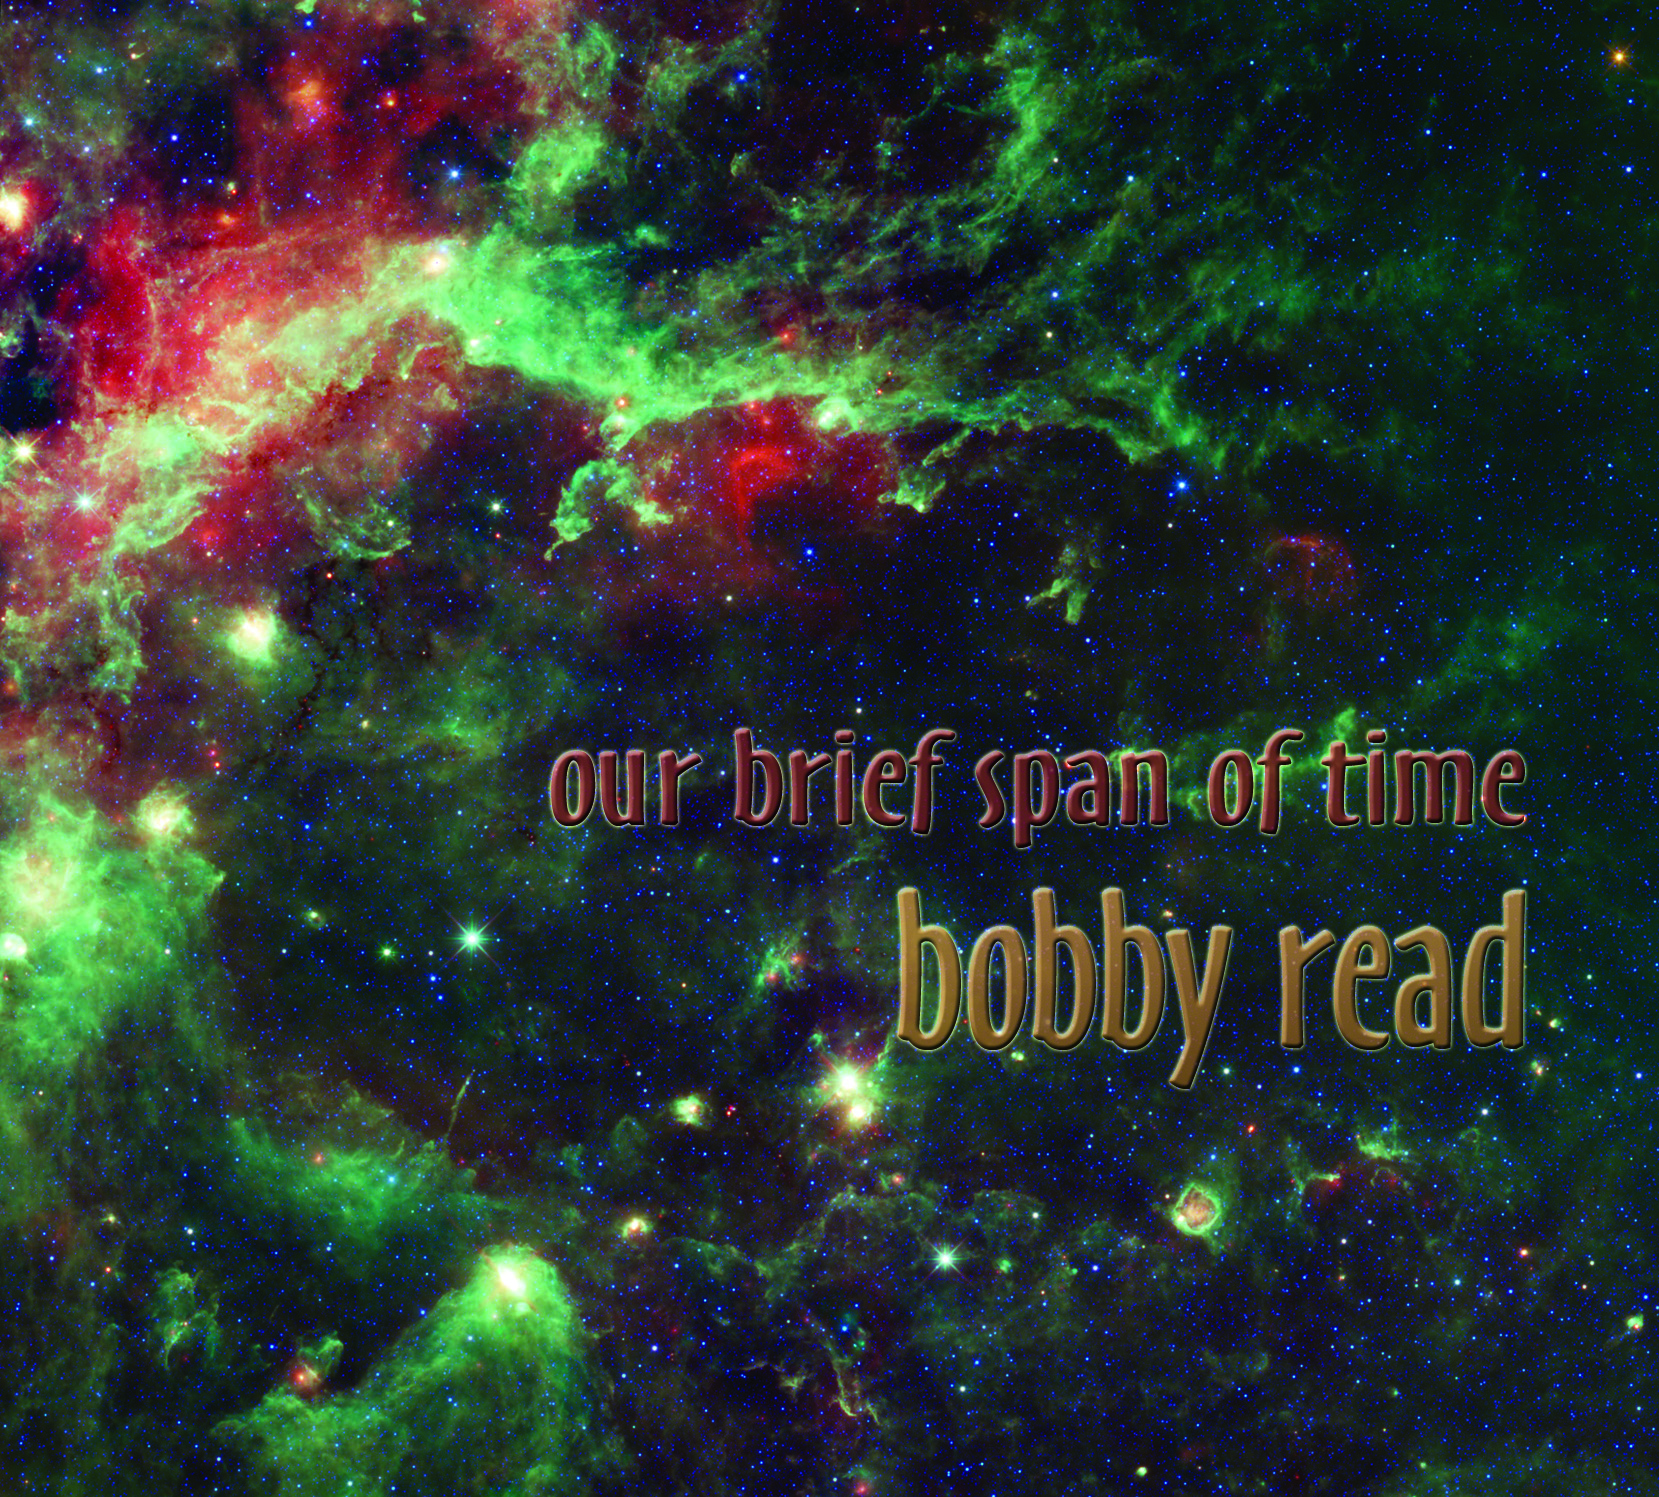 BRIEF SPAN OF TIME FRONT COVER.jpg